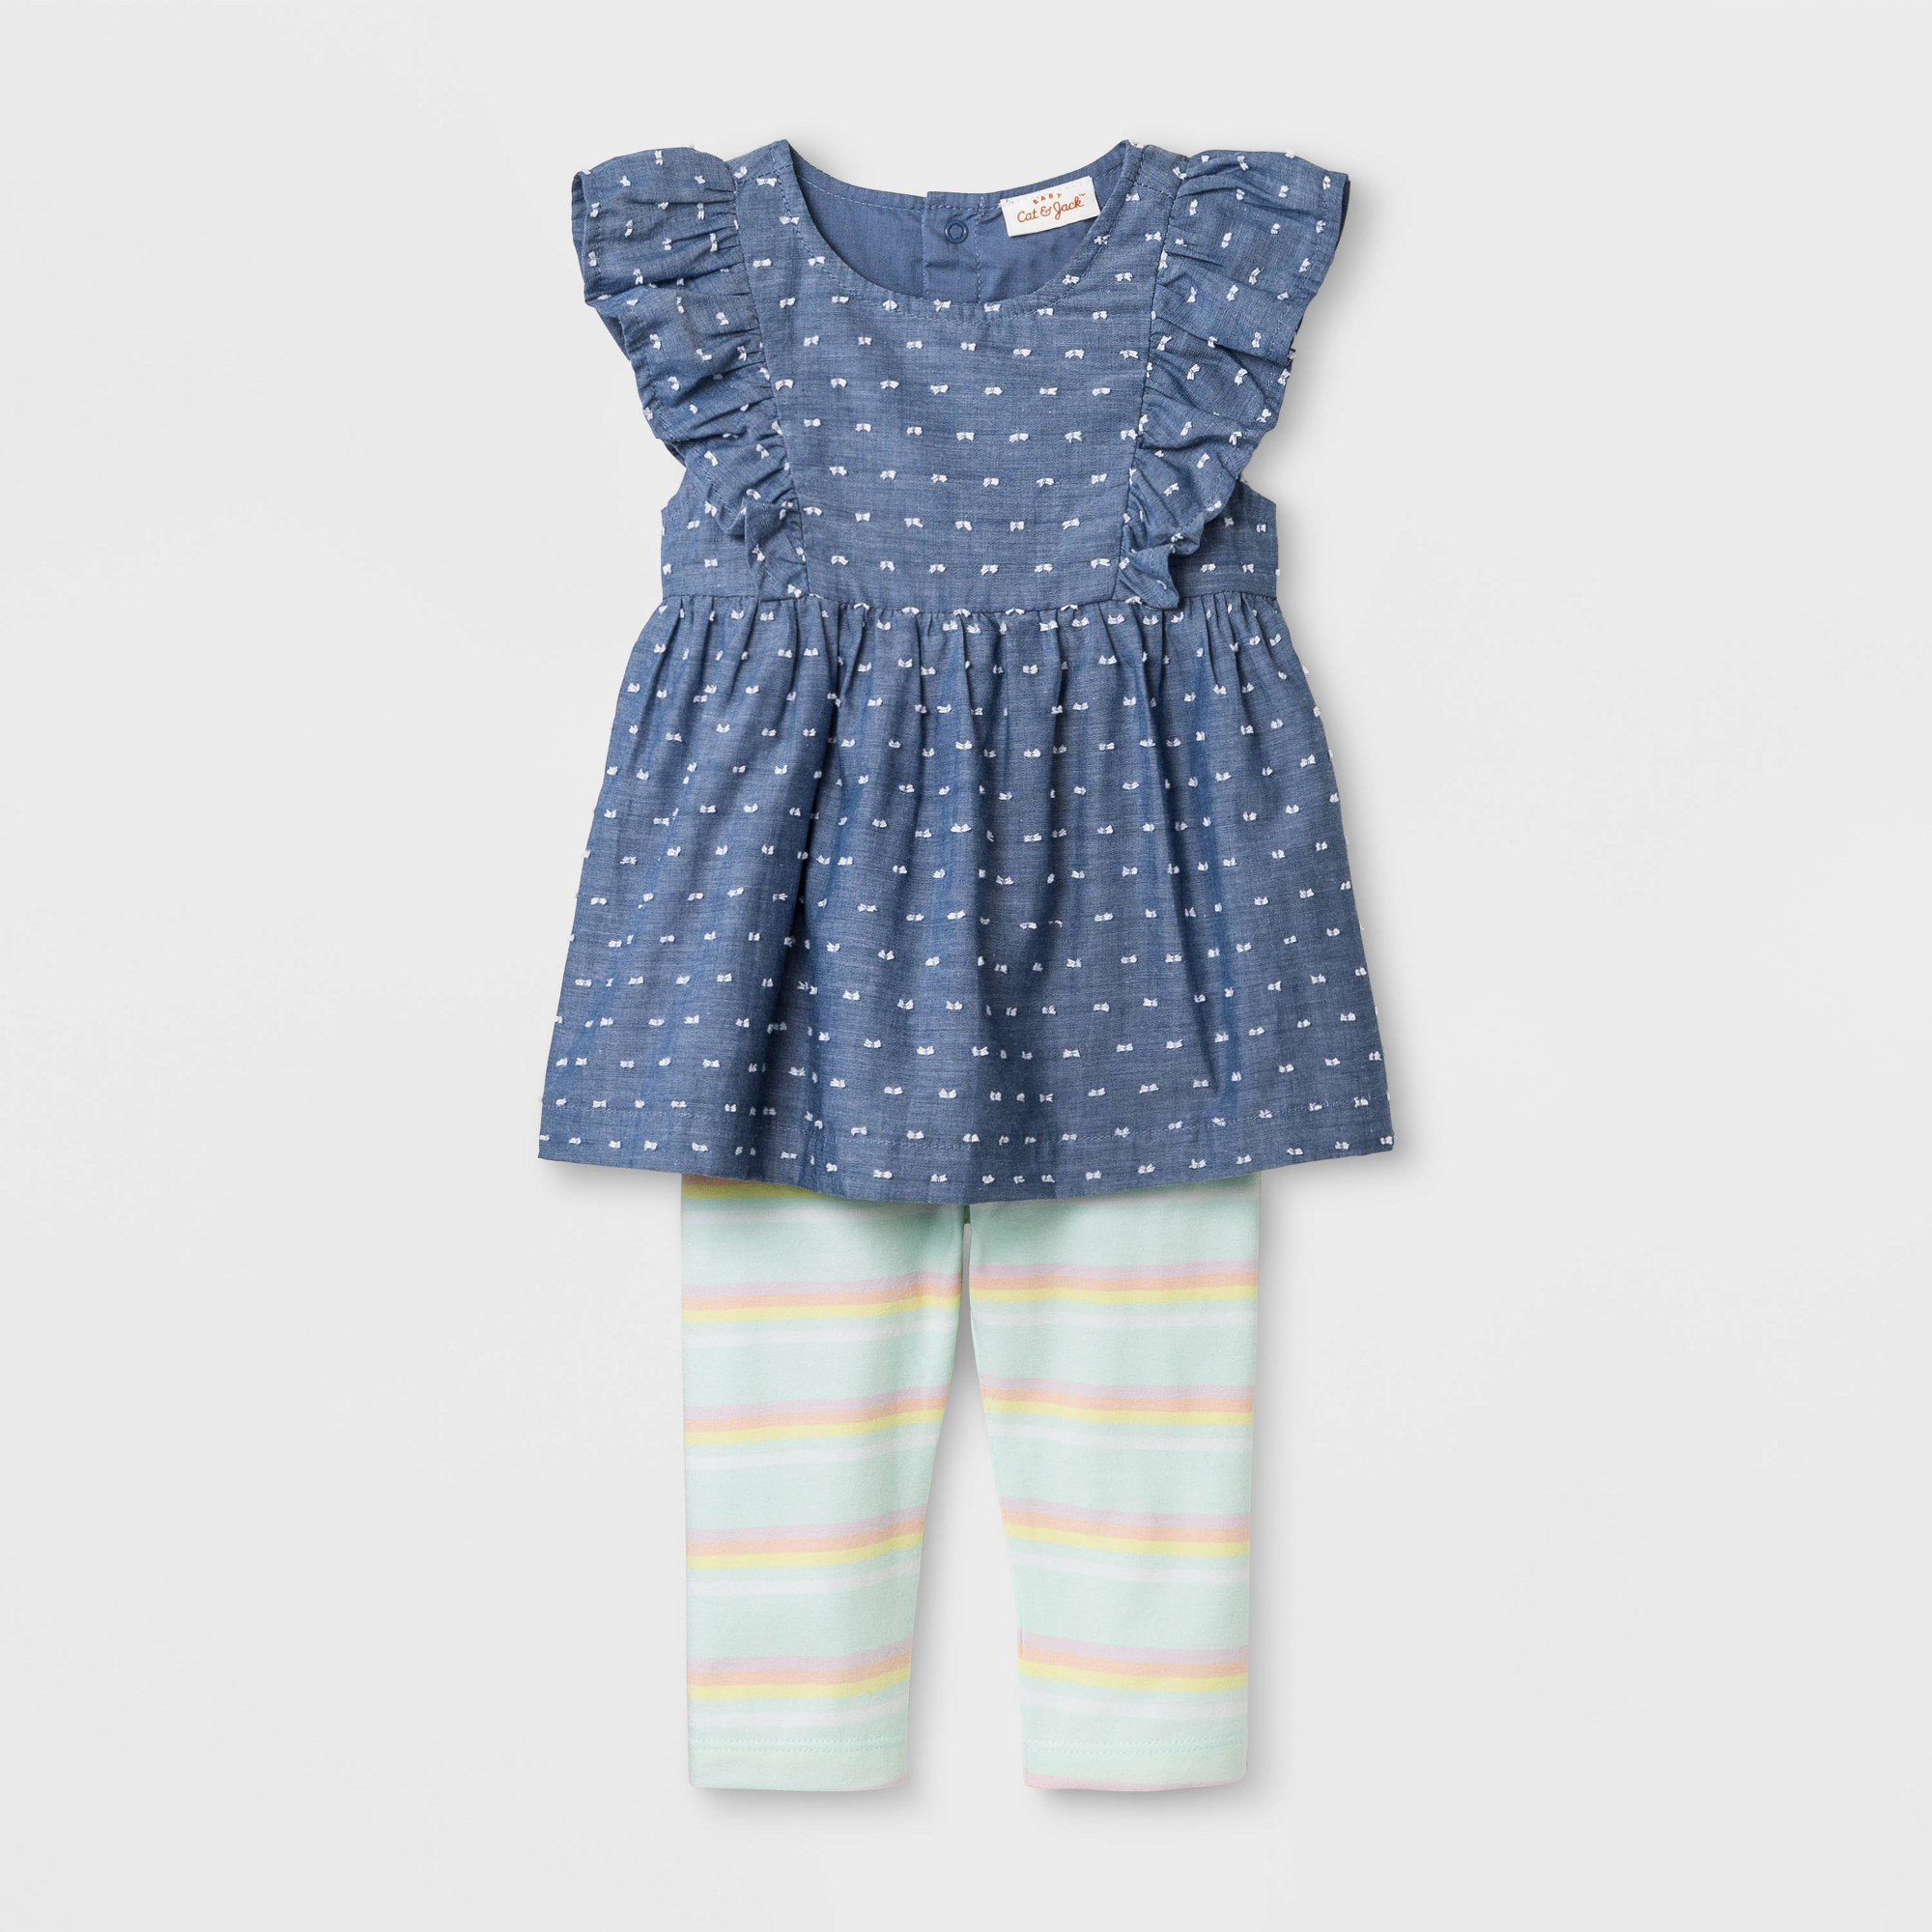 Baby Girls' Faux Denim Tunic and Stripe Leggings - Cat & Jack Blue/Green 24M